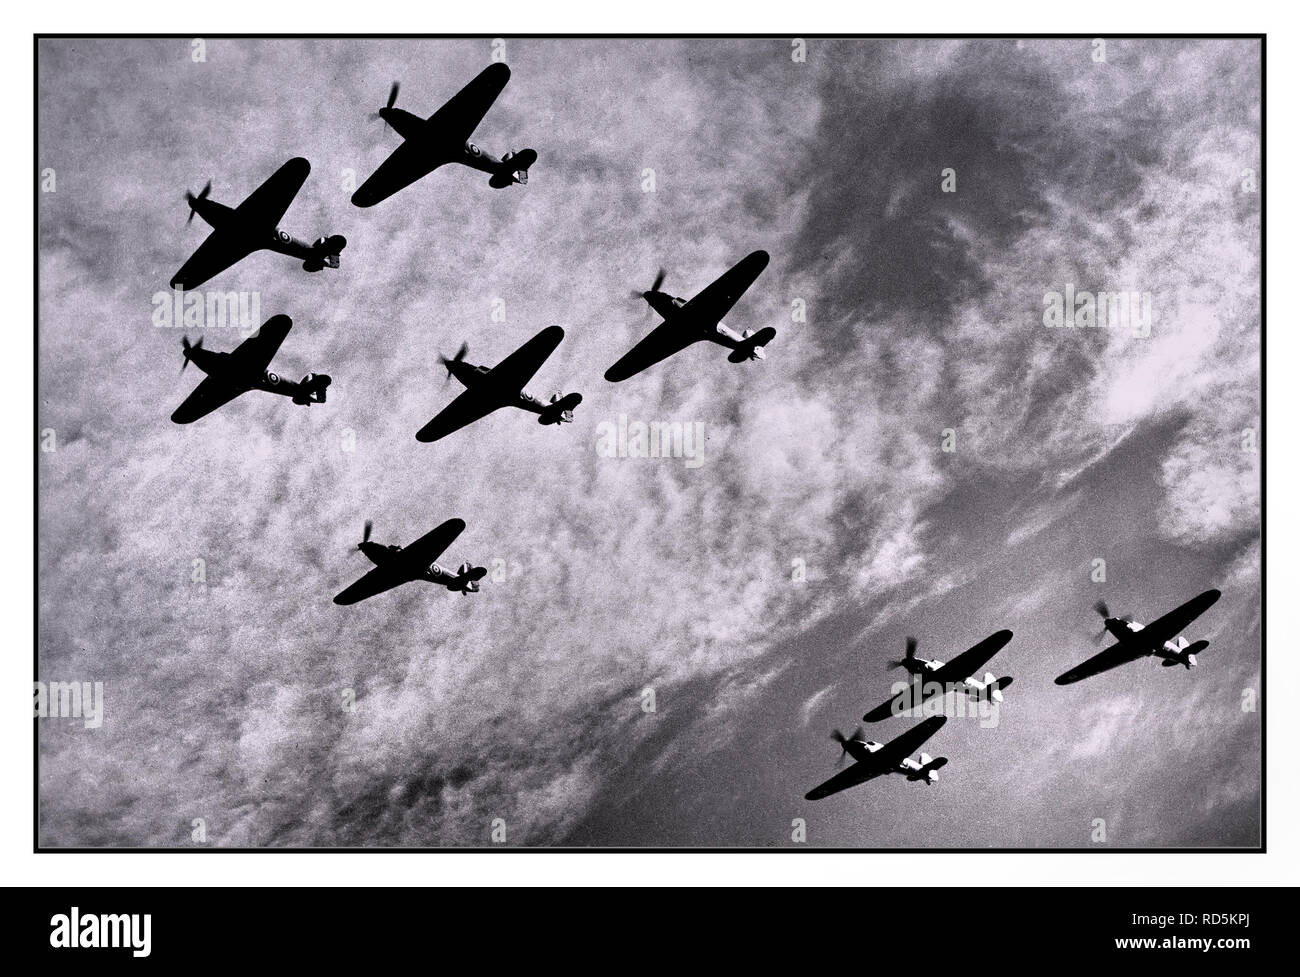 HAWKER HURRICANE Vintage WW2 Battle of Britain Squadron formation of Hawker Hurricanes of RAF Fighter Command, on patrol against Nazi German bombers attacking Britain in 1940 - Stock Image